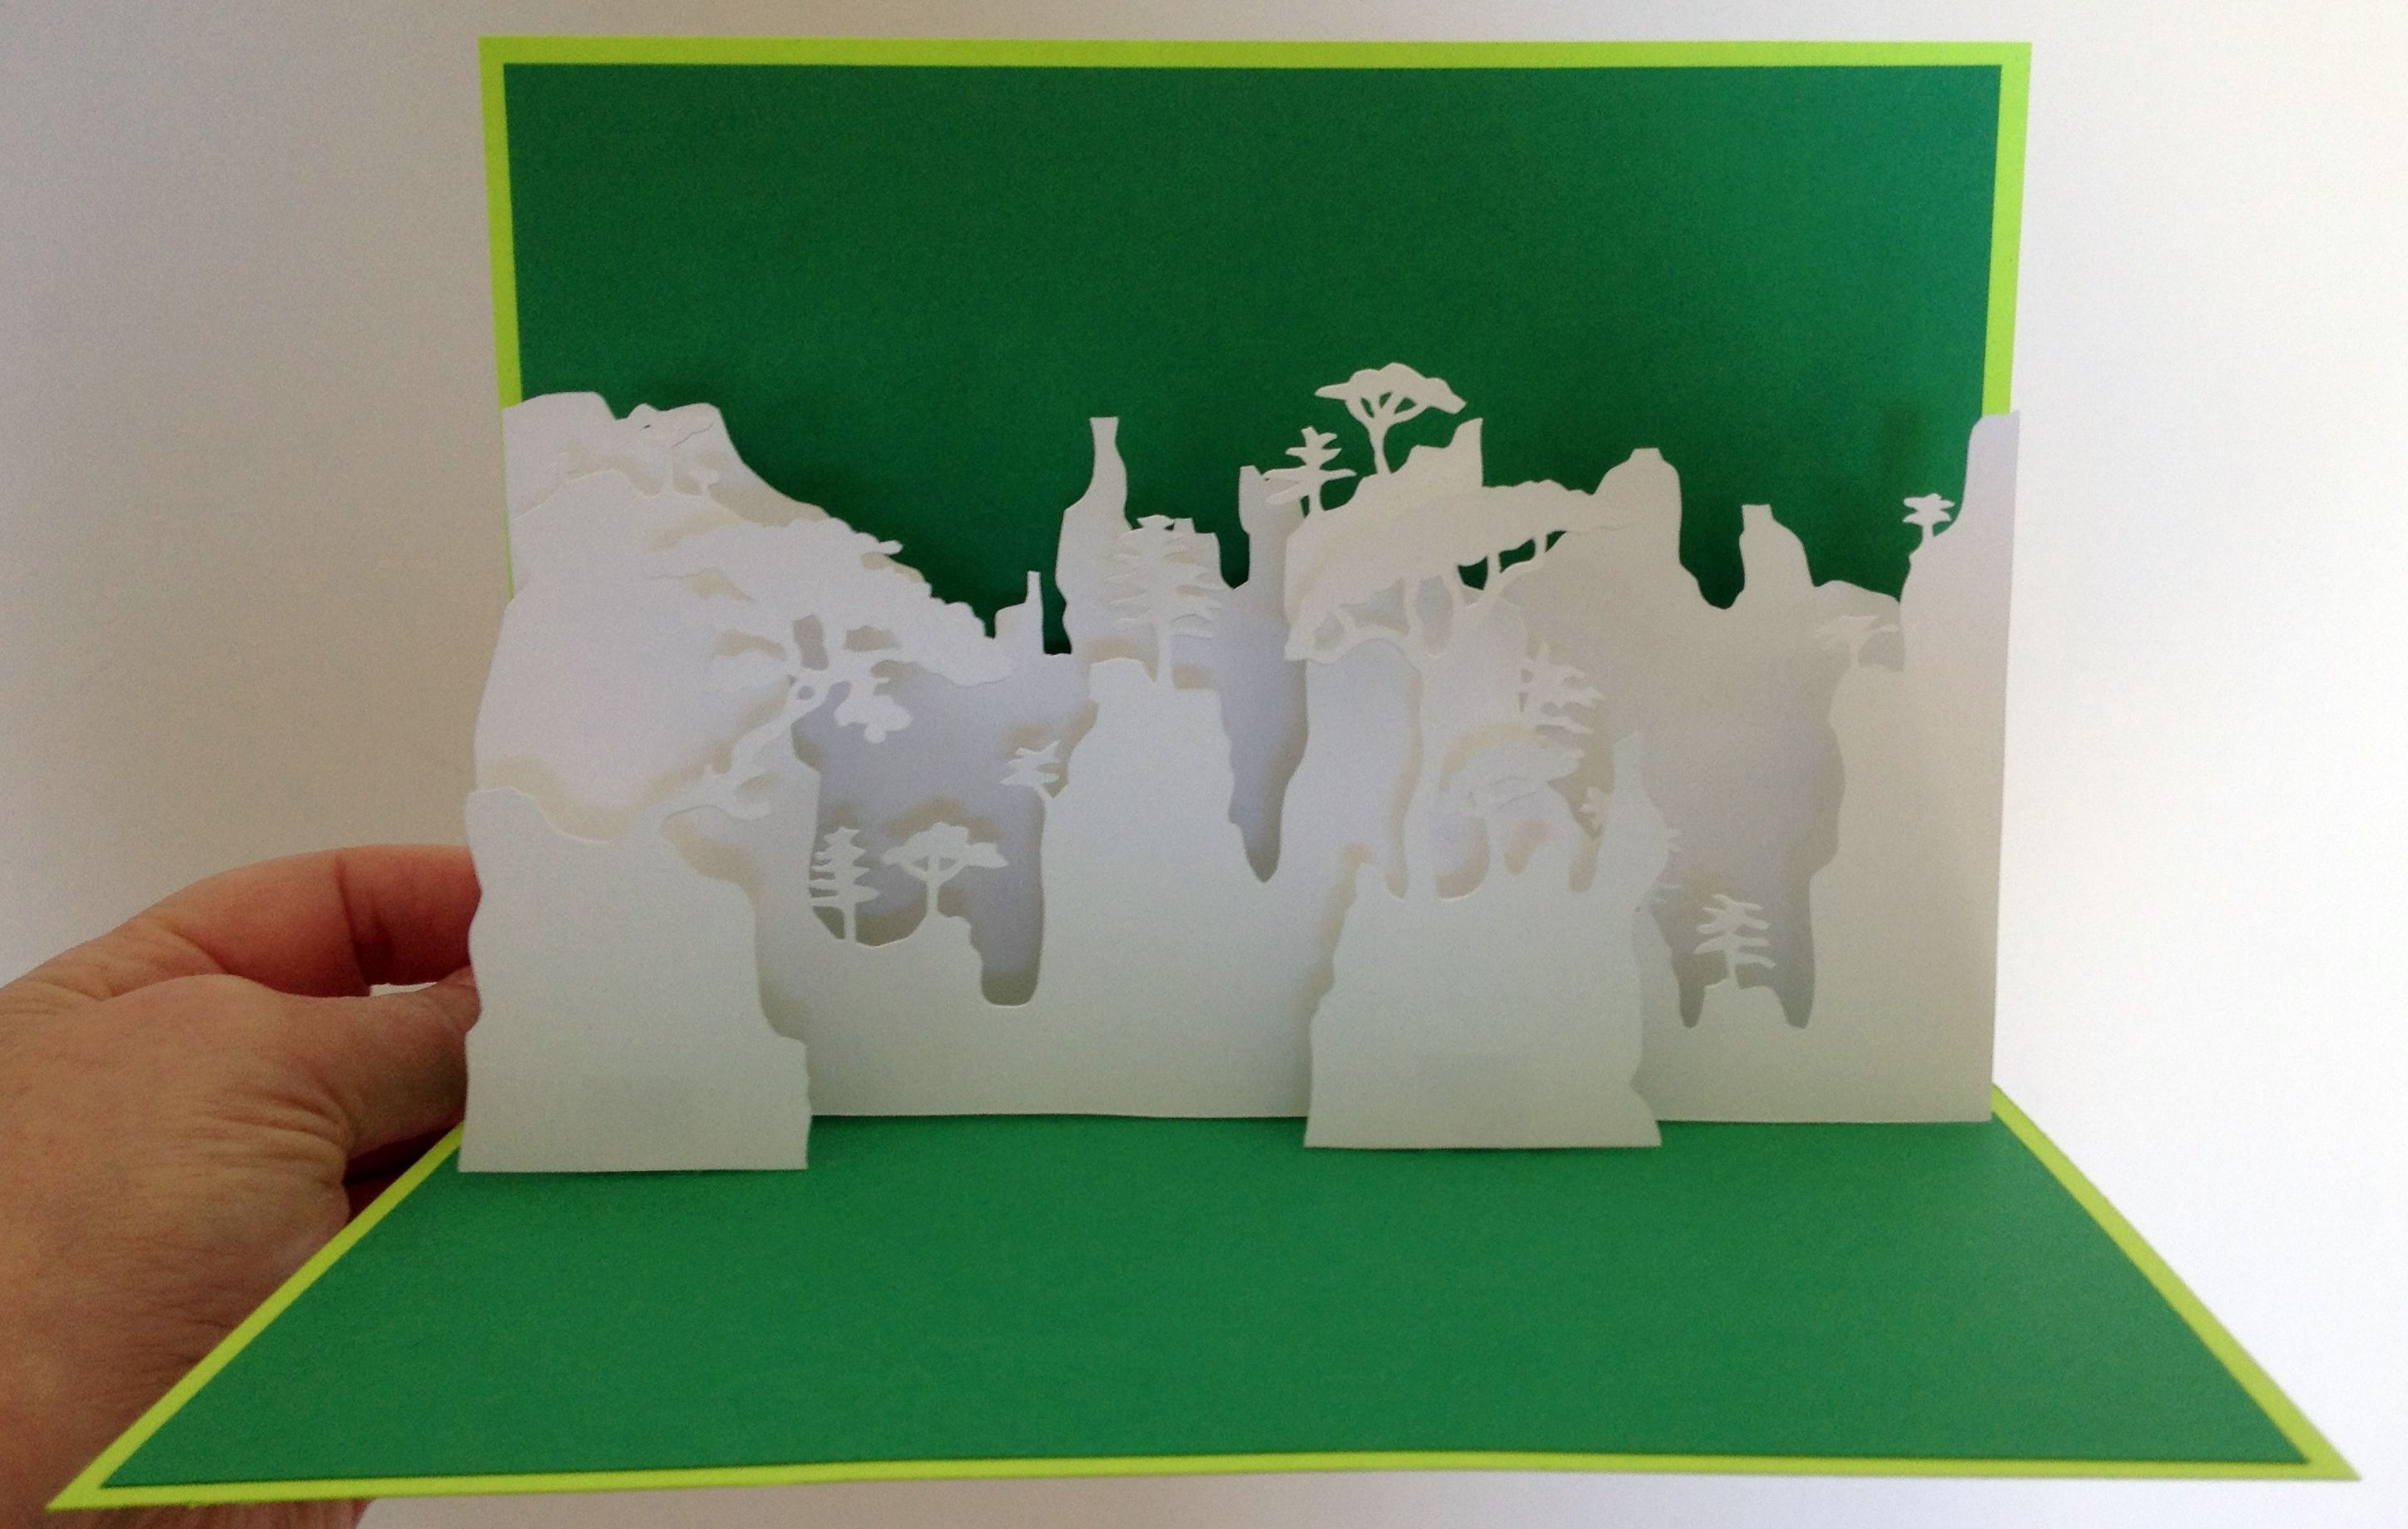 Huang Mountains China Pop Up Card Template From Paysages En Pop Up Pop Up Card Templates Diy Crafts For Gifts Cards Handmade